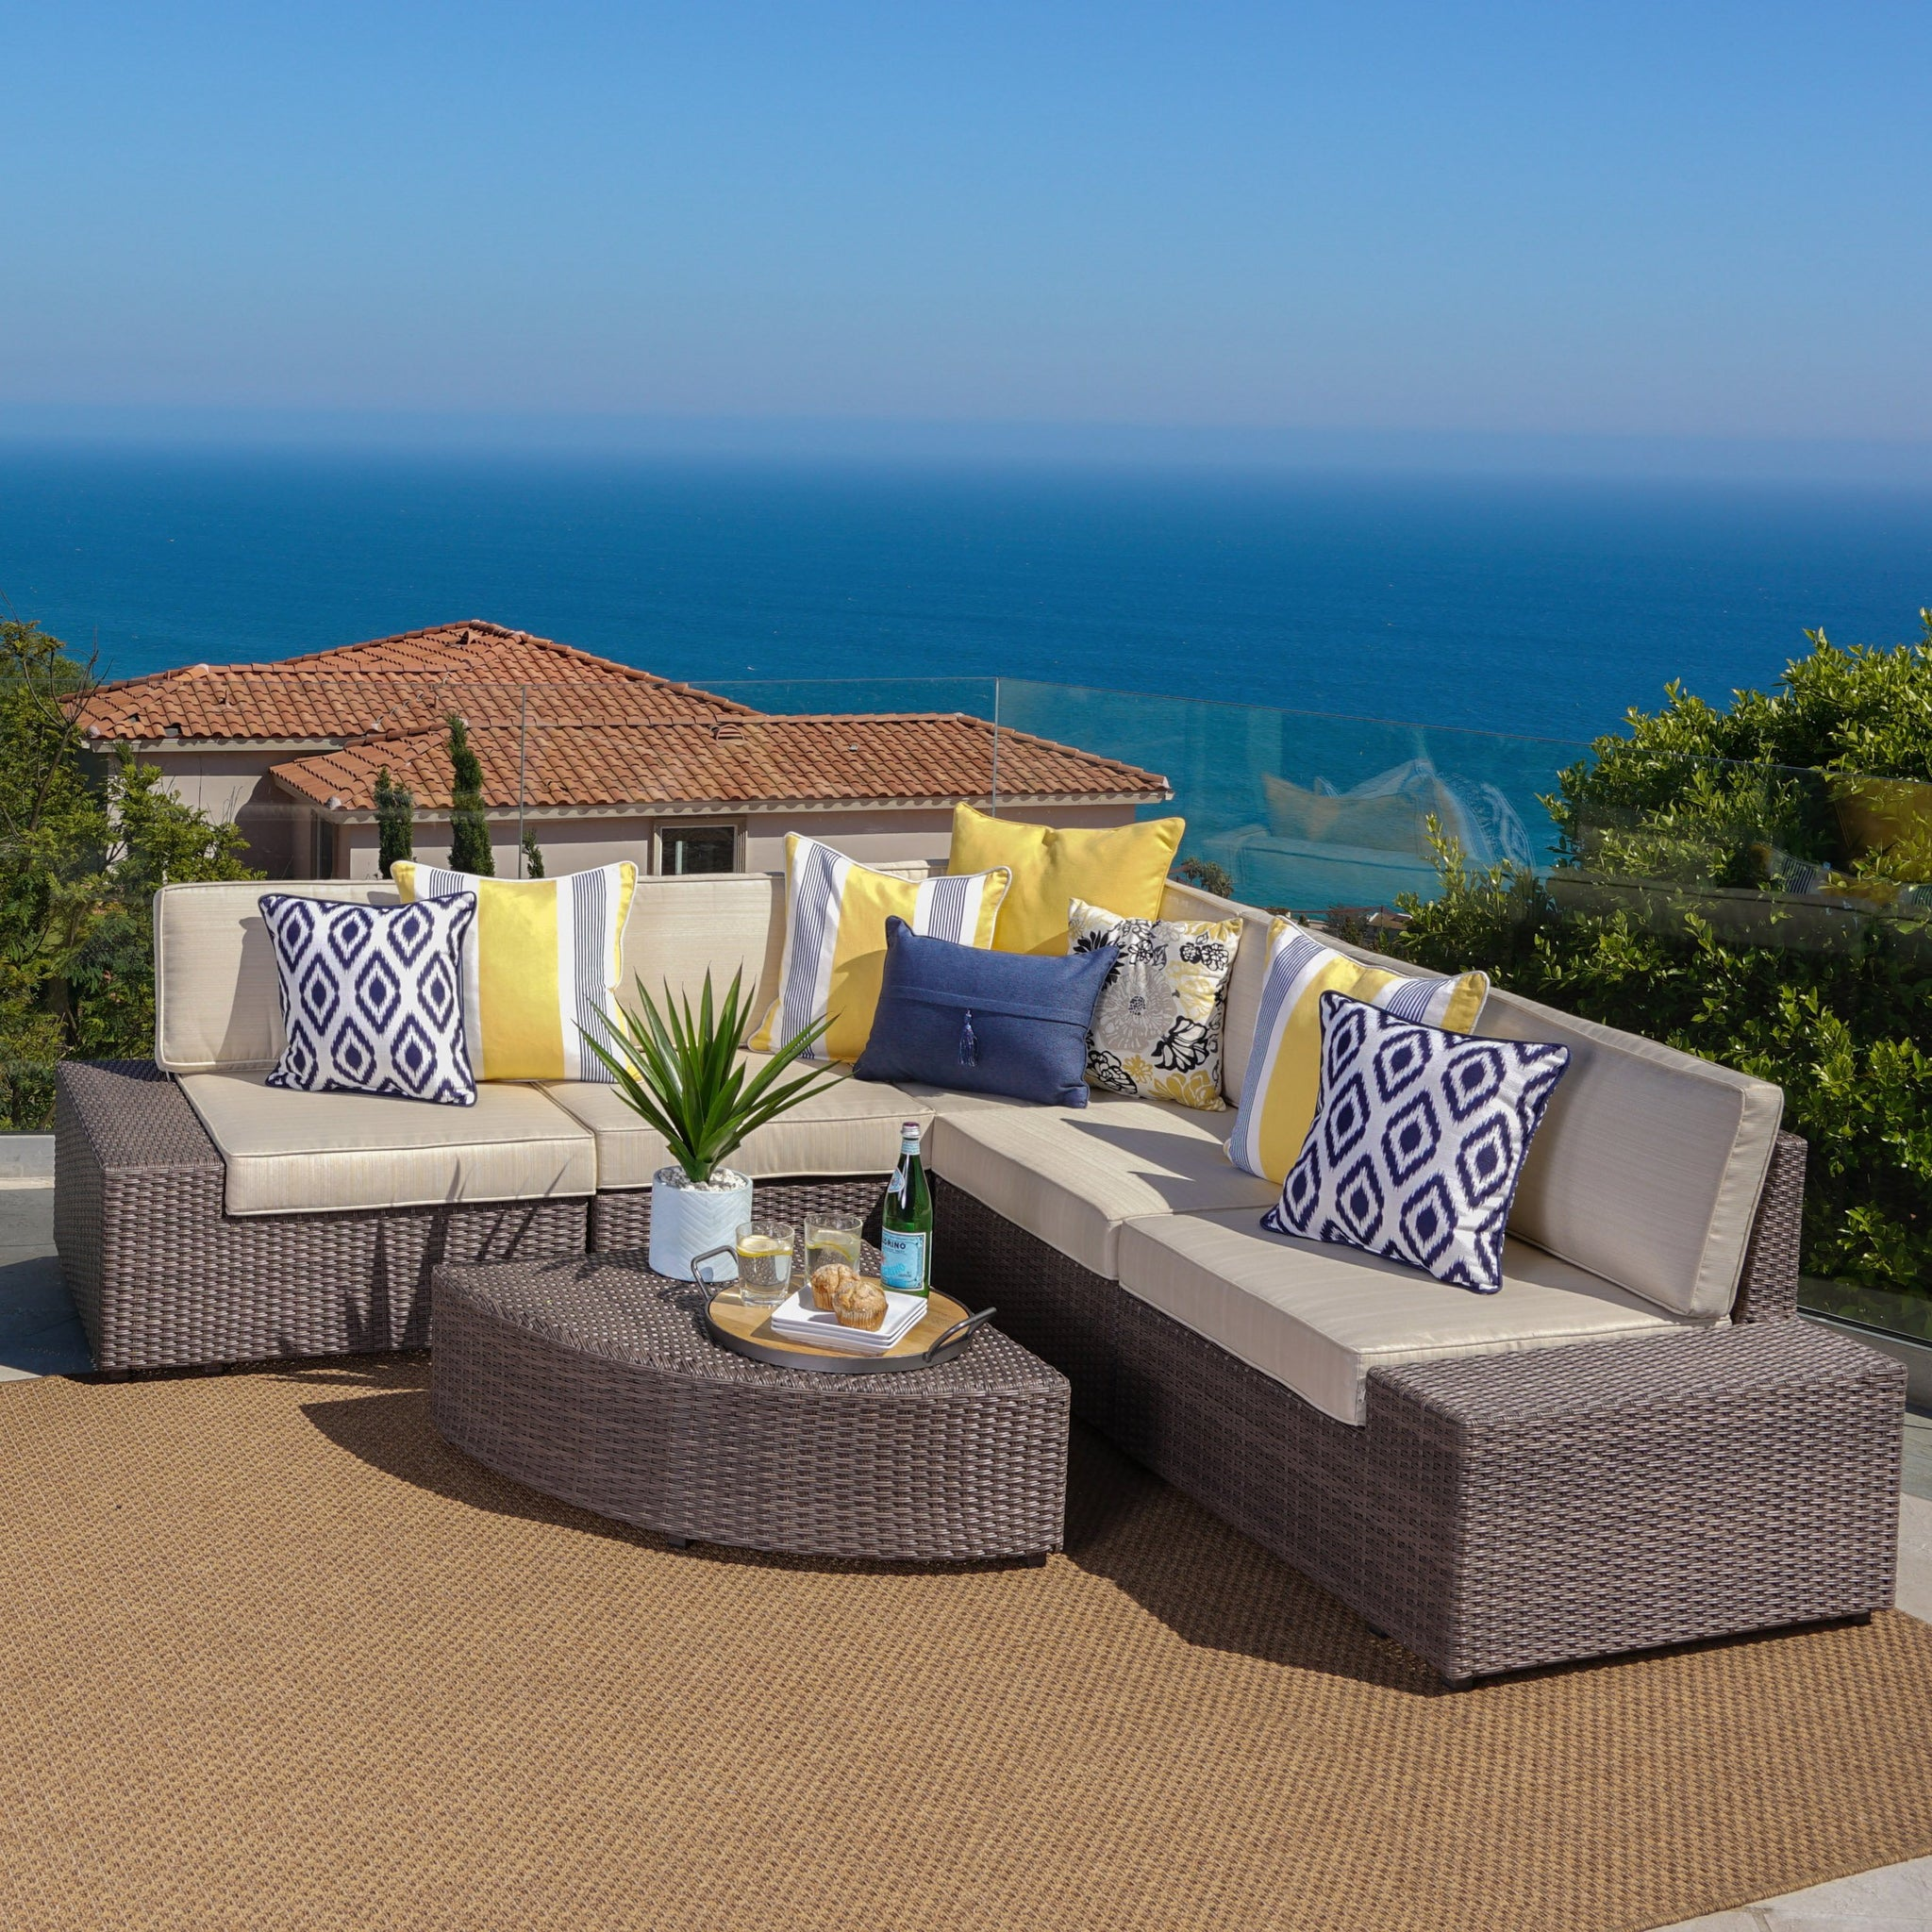 Groovy Sanger Outdoor 6 Piece Wicker Sectional Sofa Set With Water Onthecornerstone Fun Painted Chair Ideas Images Onthecornerstoneorg